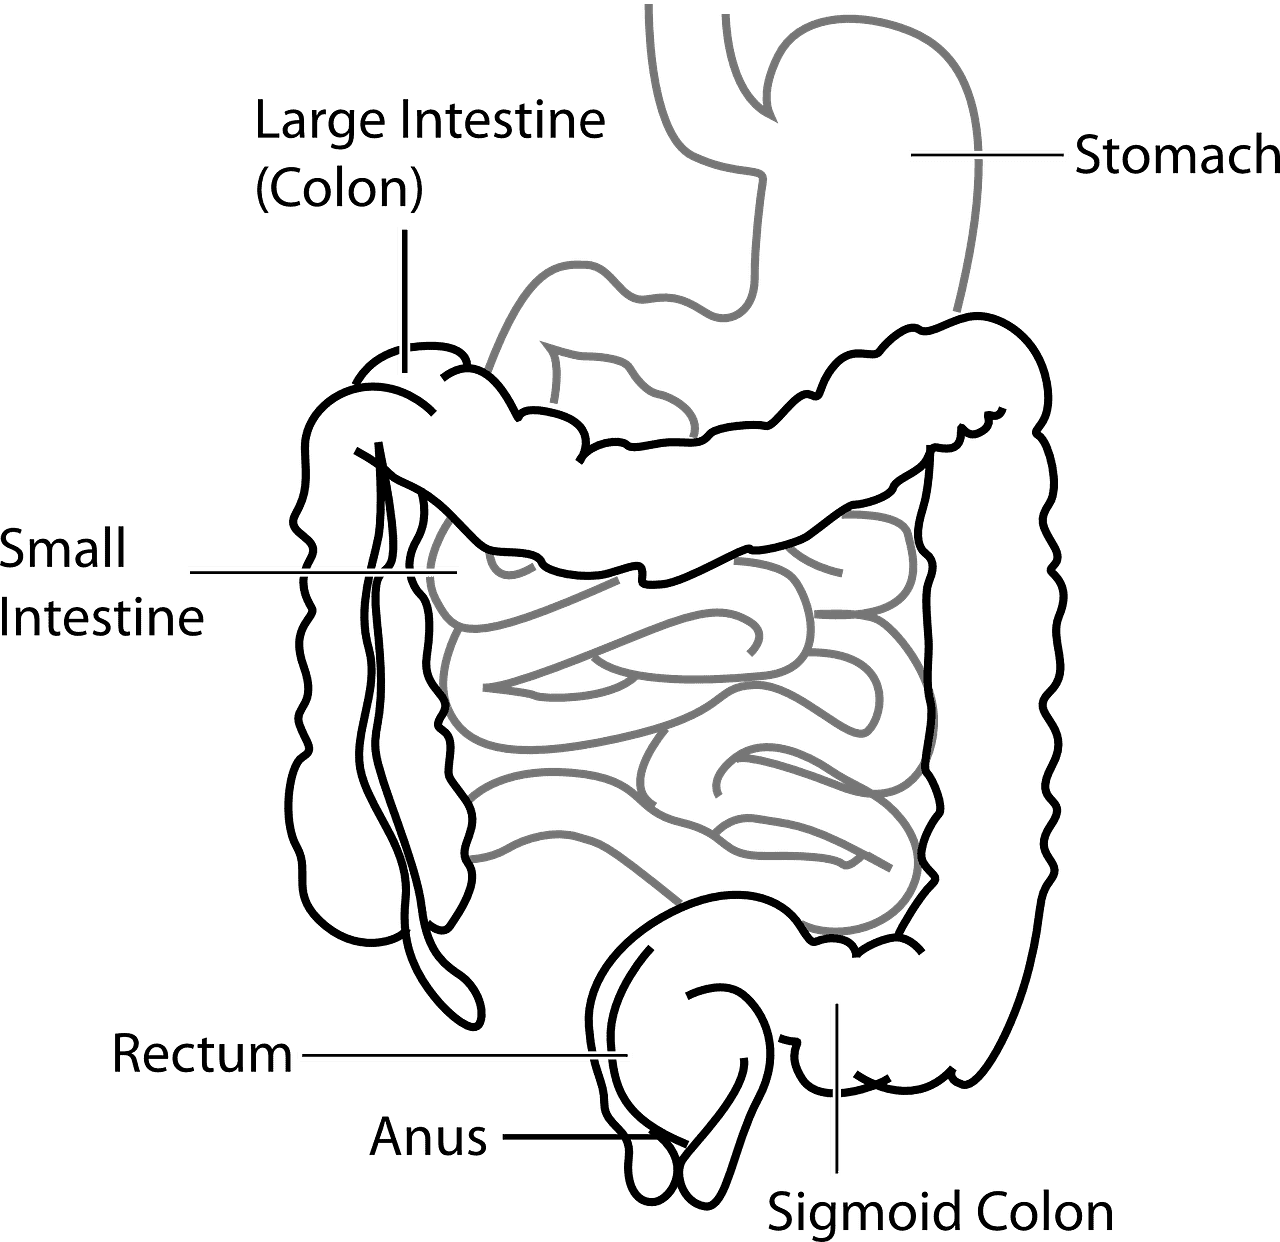 Image of the gastric system